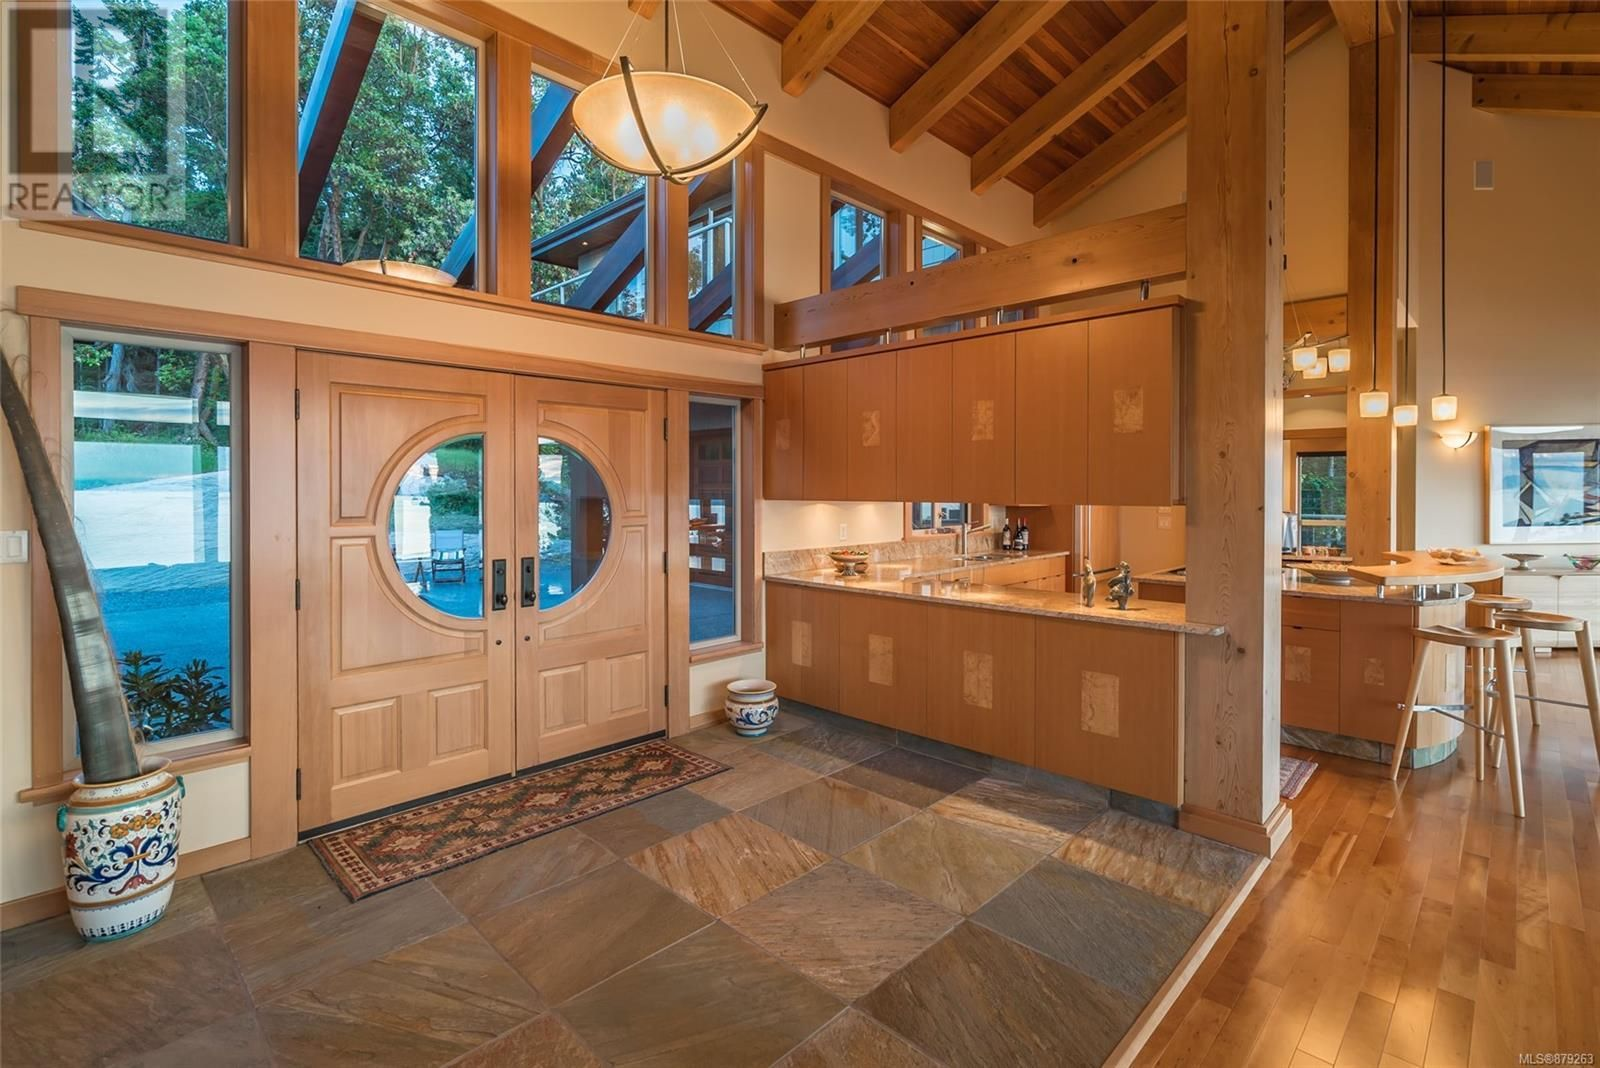 Photo 7: Photos: 825 Duthie Ave in Gabriola Island: House for sale : MLS®# 879263